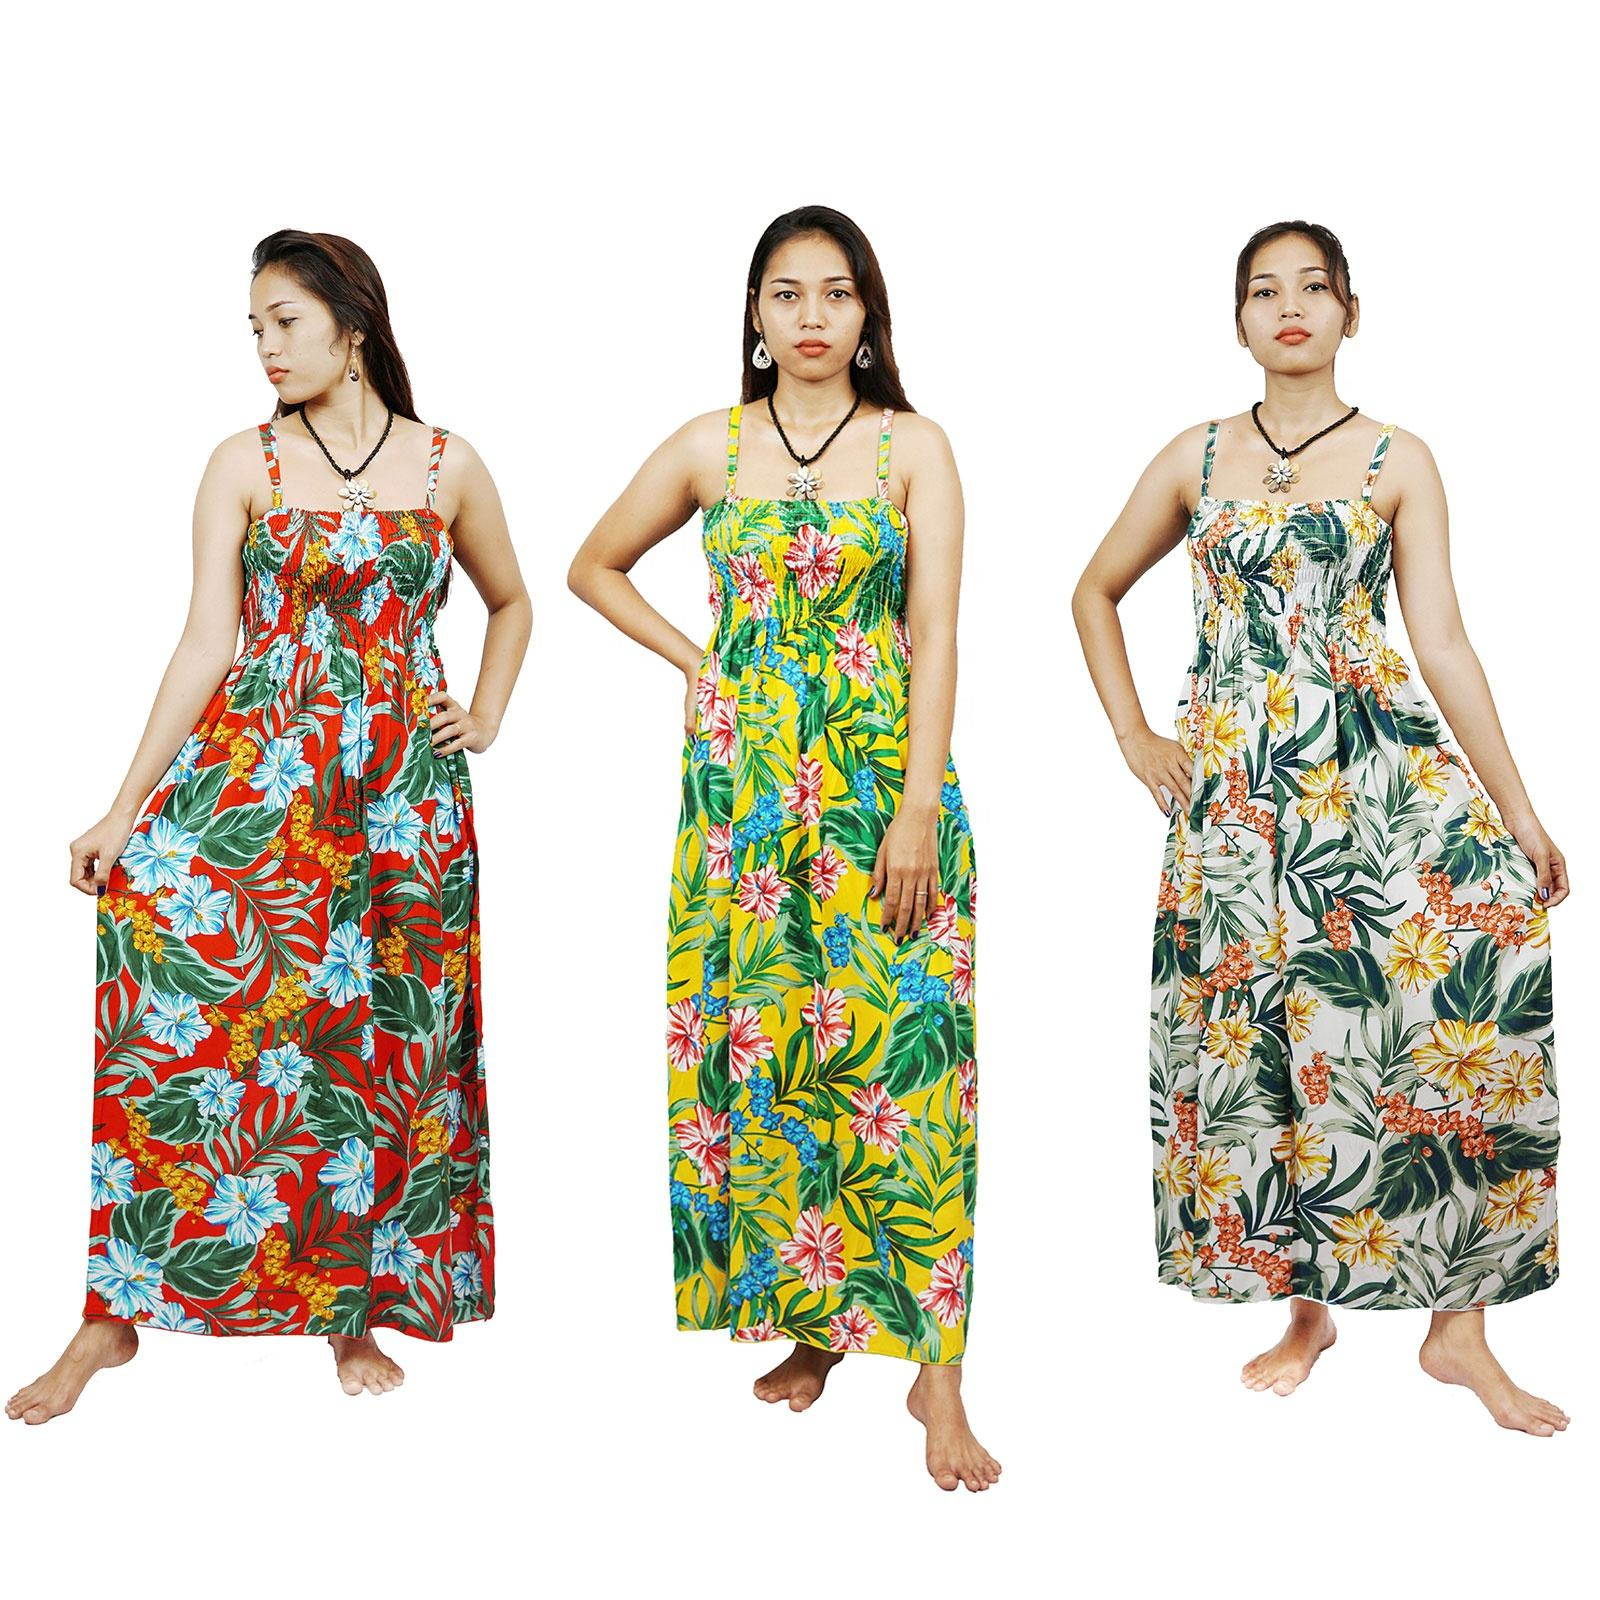 New design Women Summer Maxi beach dress Sexy Bohemian casual dresses hibiscus flower printed sleeveless Sundress from Indonesia